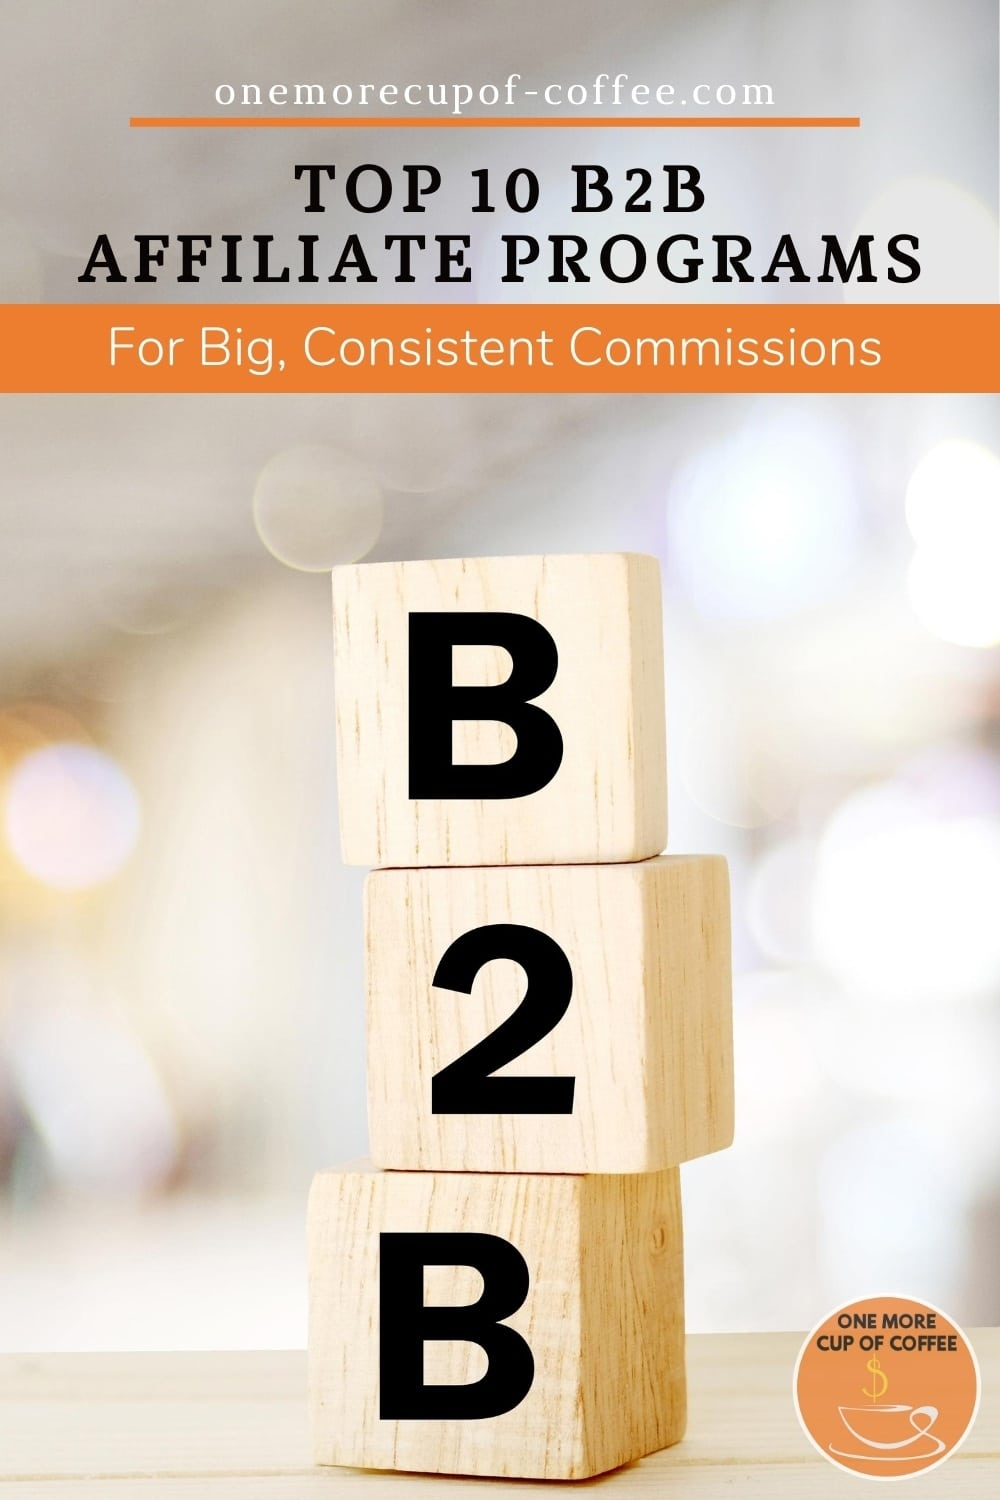 """image of 3 wooden blocks with the letters and number, B, 2, B; with text overlay """"Top 10 B2B Affiliate Programs For Big, Consistent Commissions"""""""